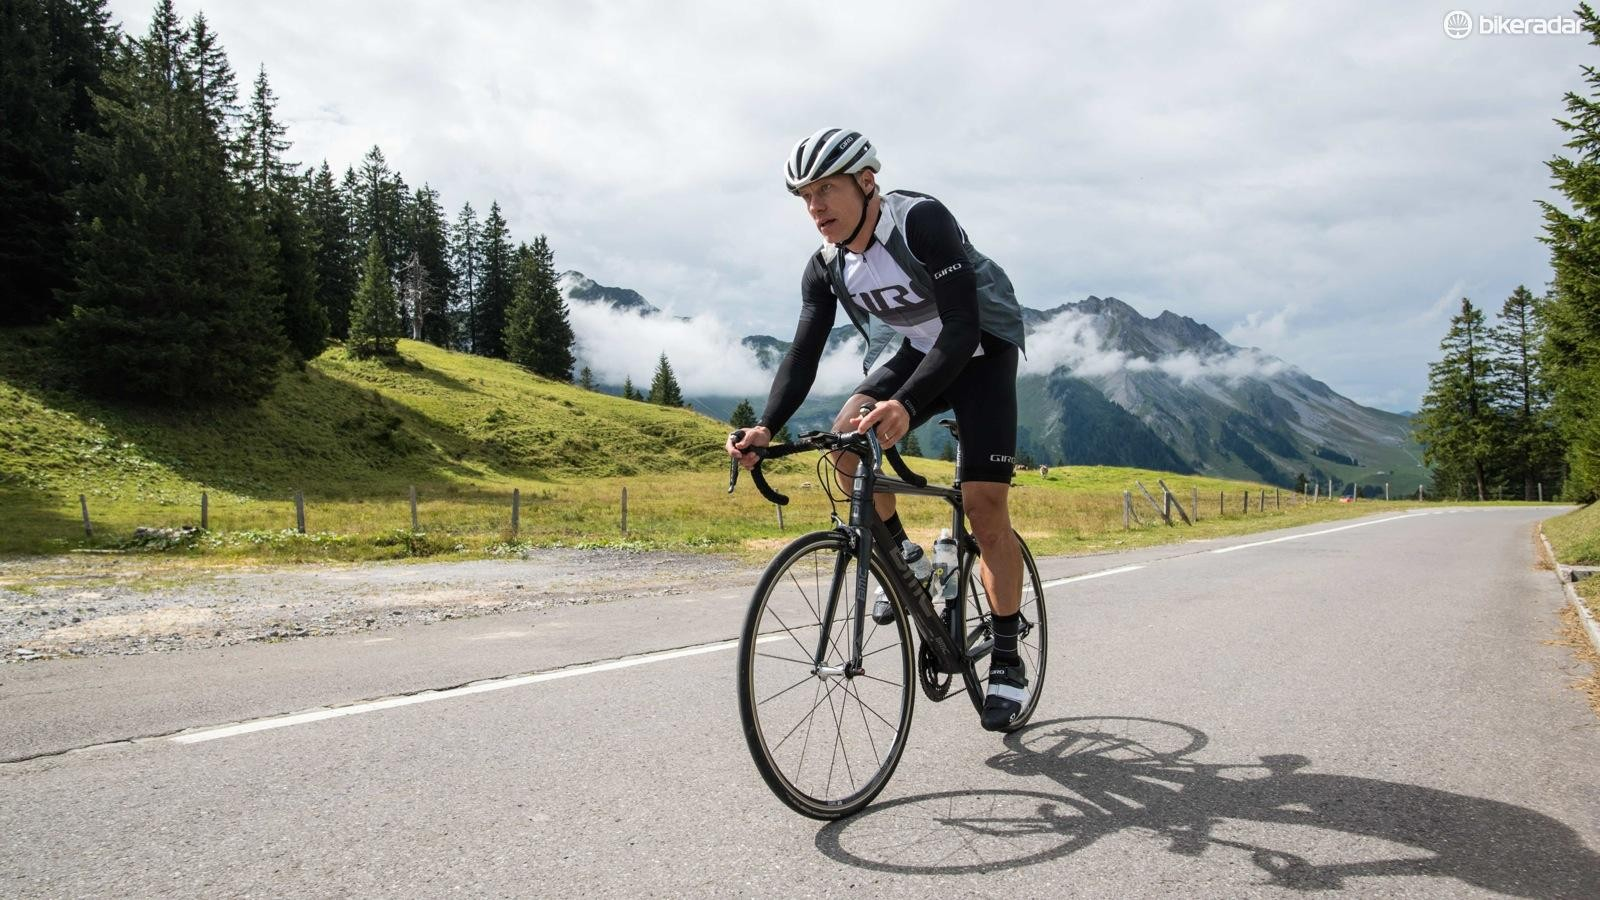 The new Giro Chrono road clothing features Italian fabrics and design